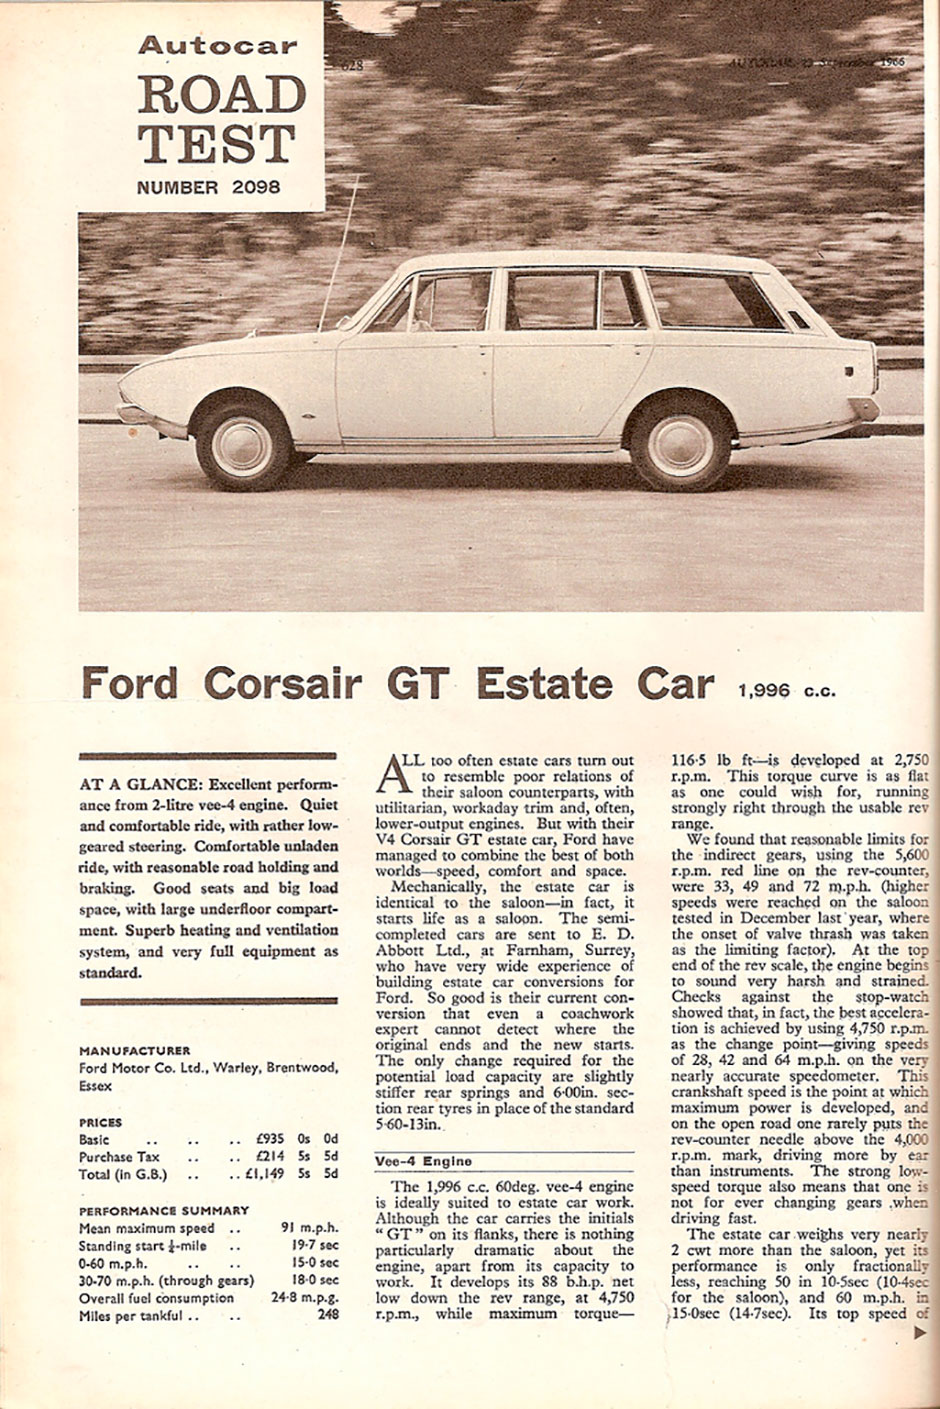 Ford Corsair 2.0 GT Estate